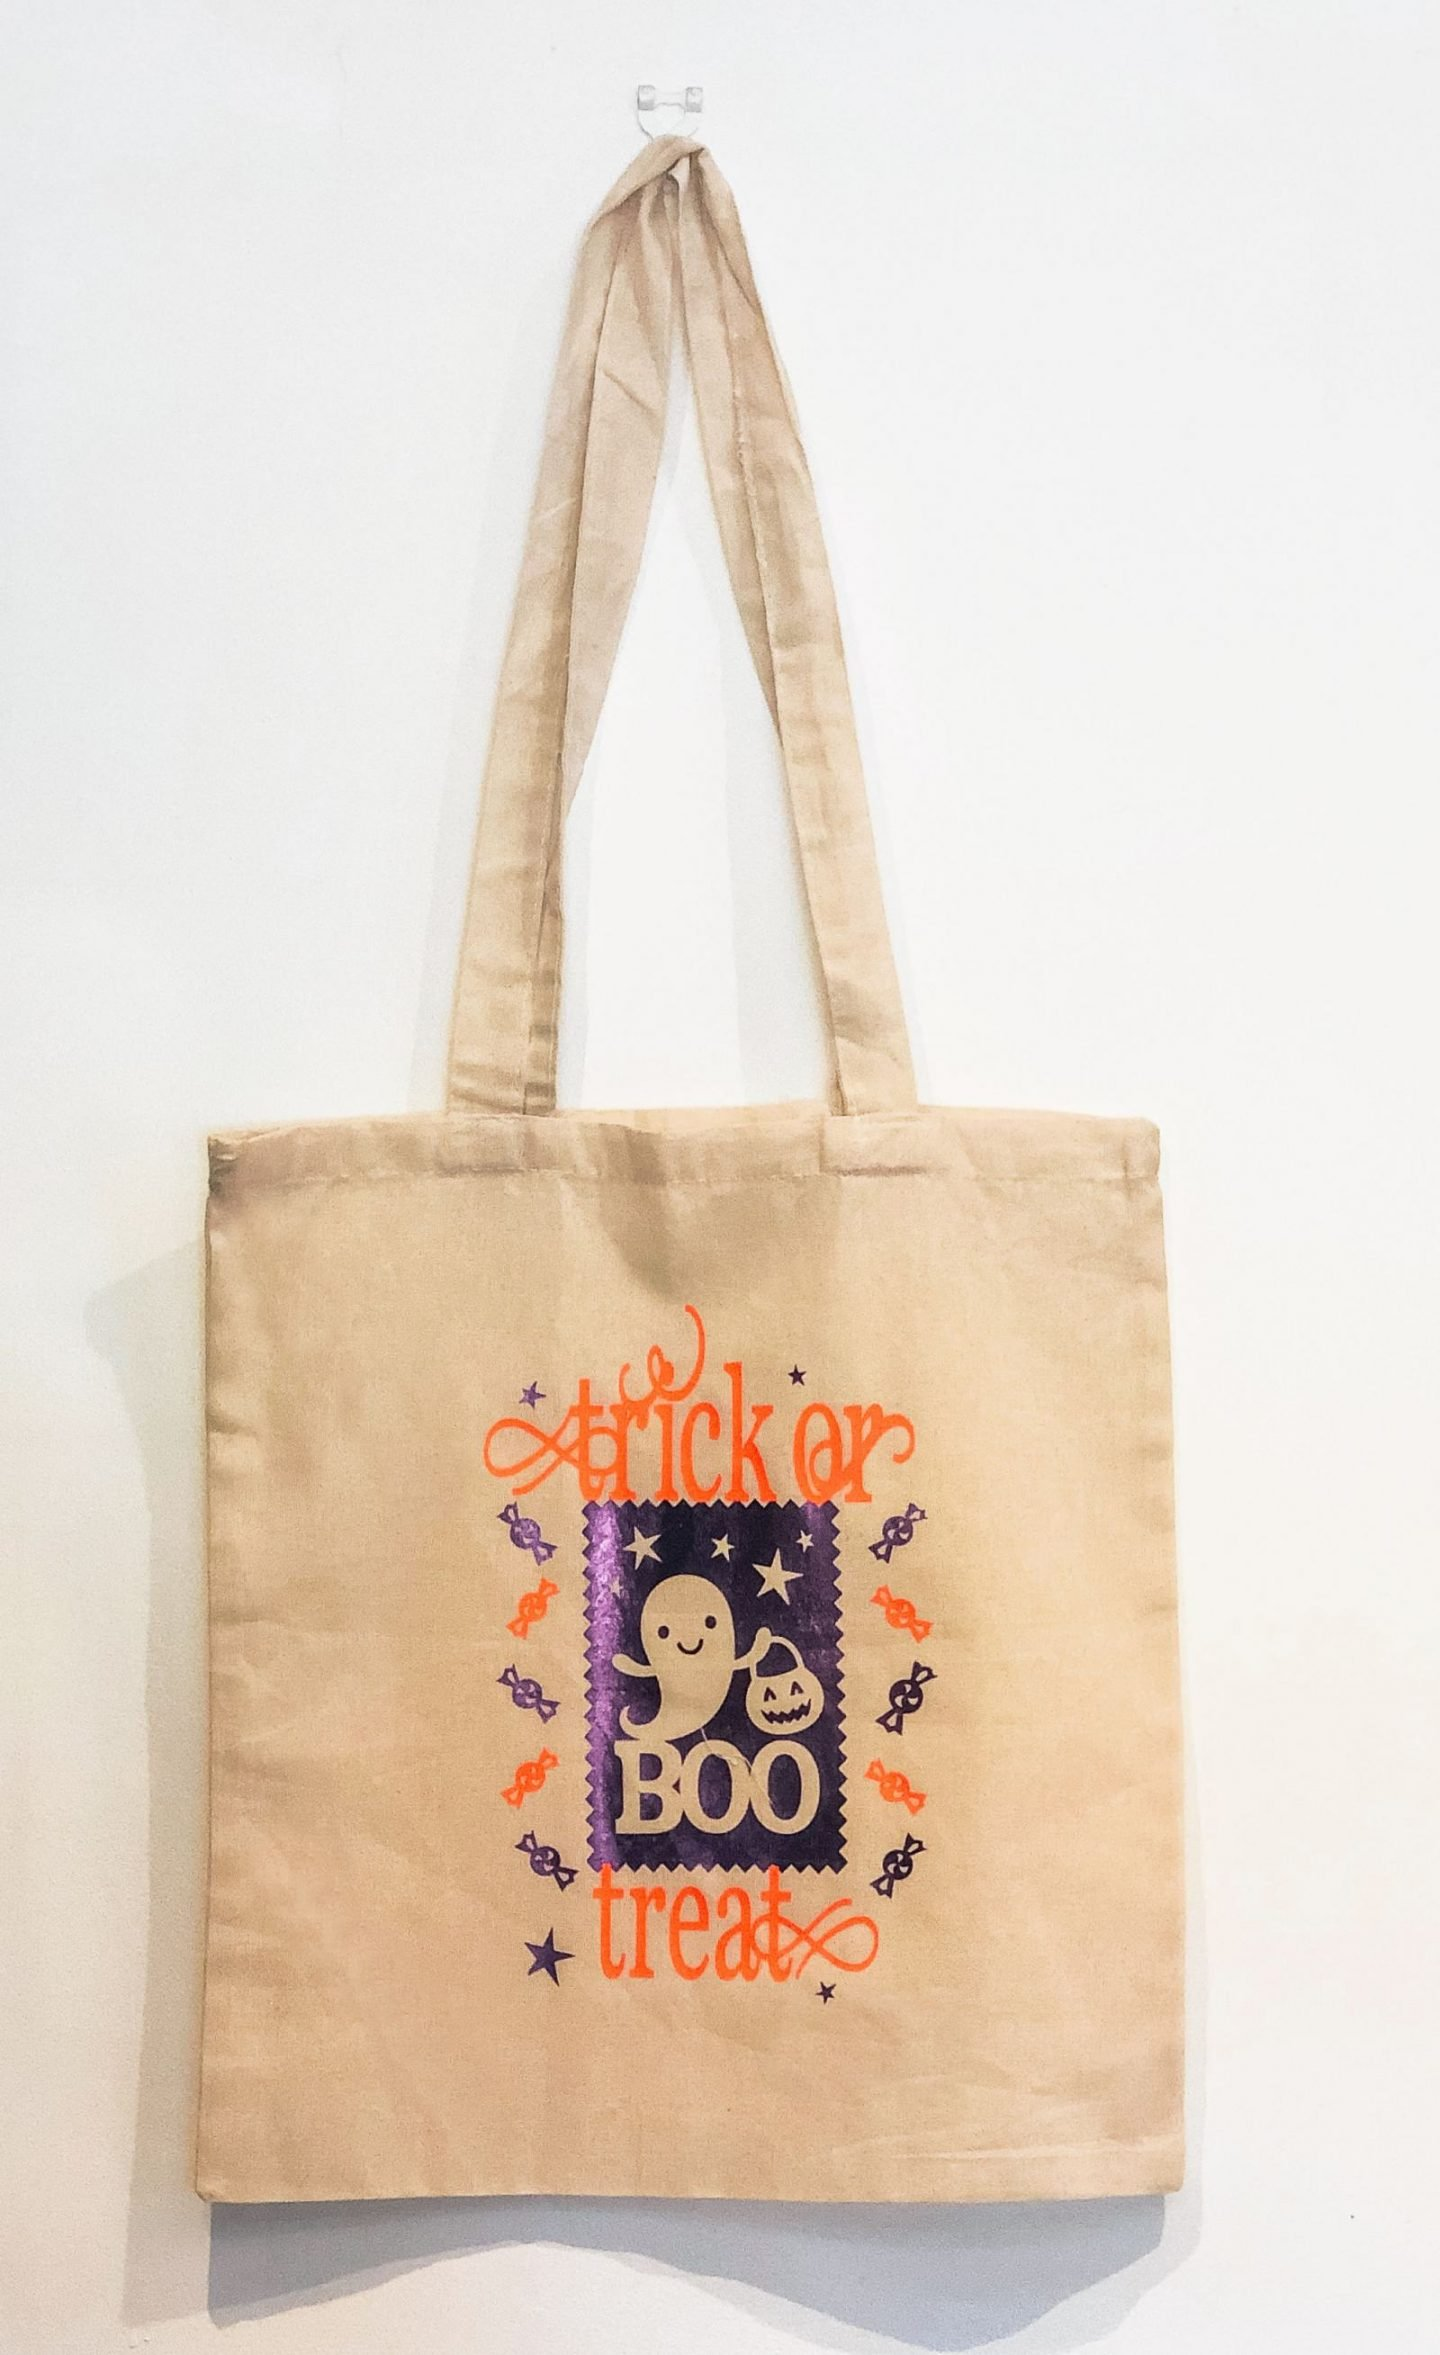 Halloween Craft Activities, Making trick or treat bags with iron on vinyl